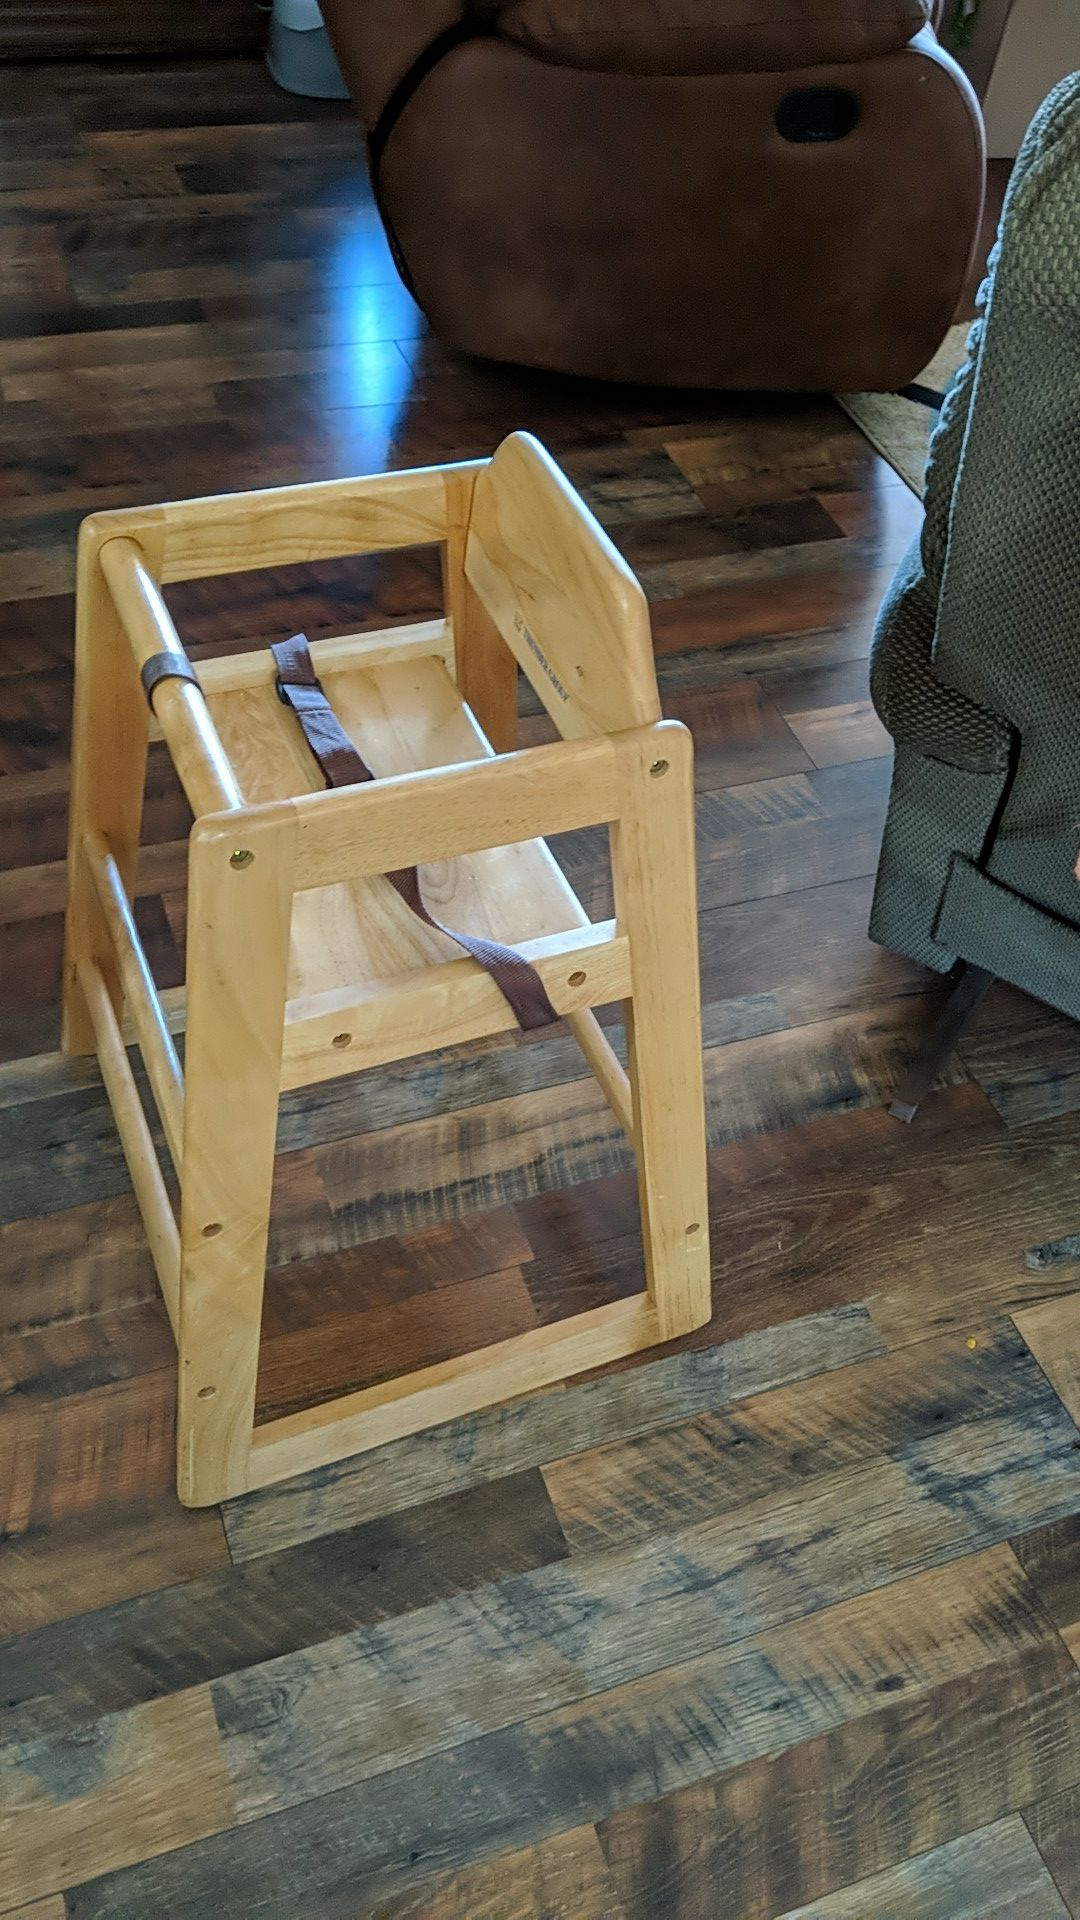 Restaurant Grade Wood High Chair; fits great under dining table